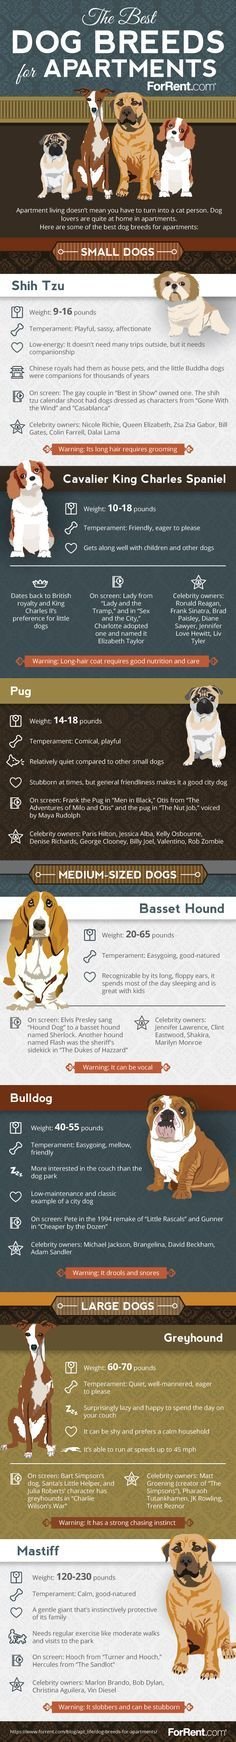 Apartment Living Choosing the Right Dog Breed